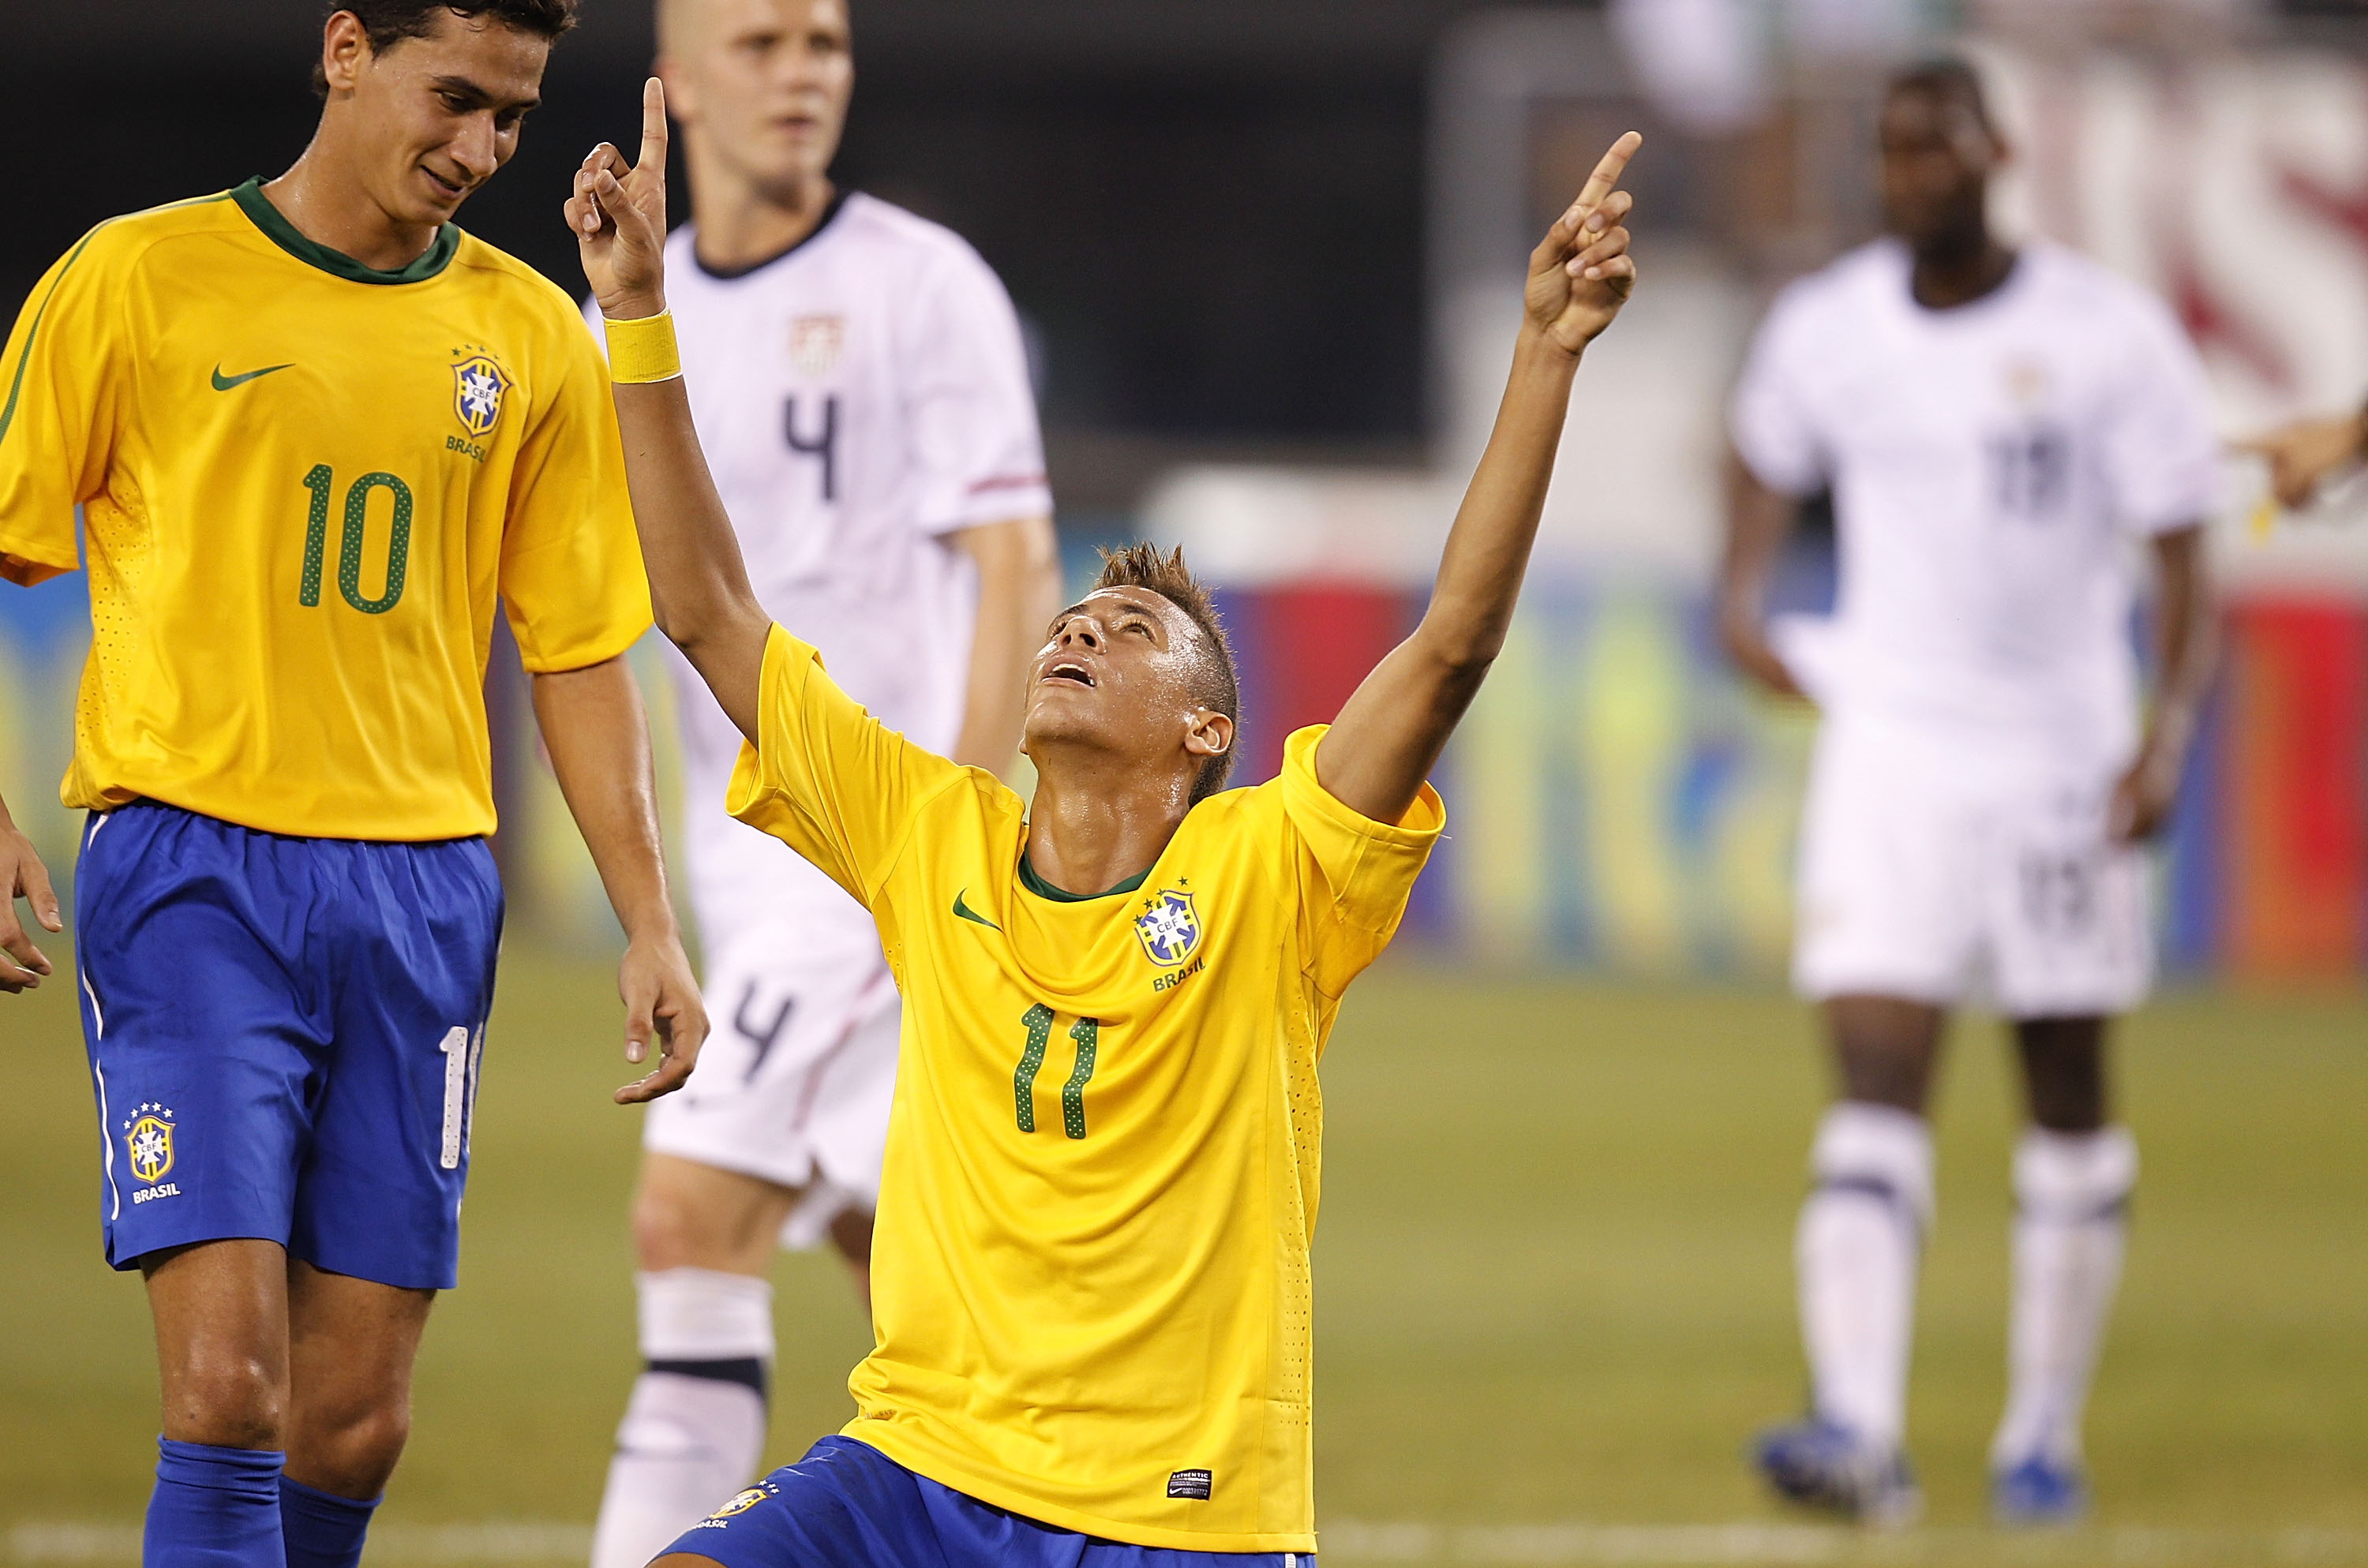 Neymar Scores on a Penalty Kick as Brazil Dominates the U.S.